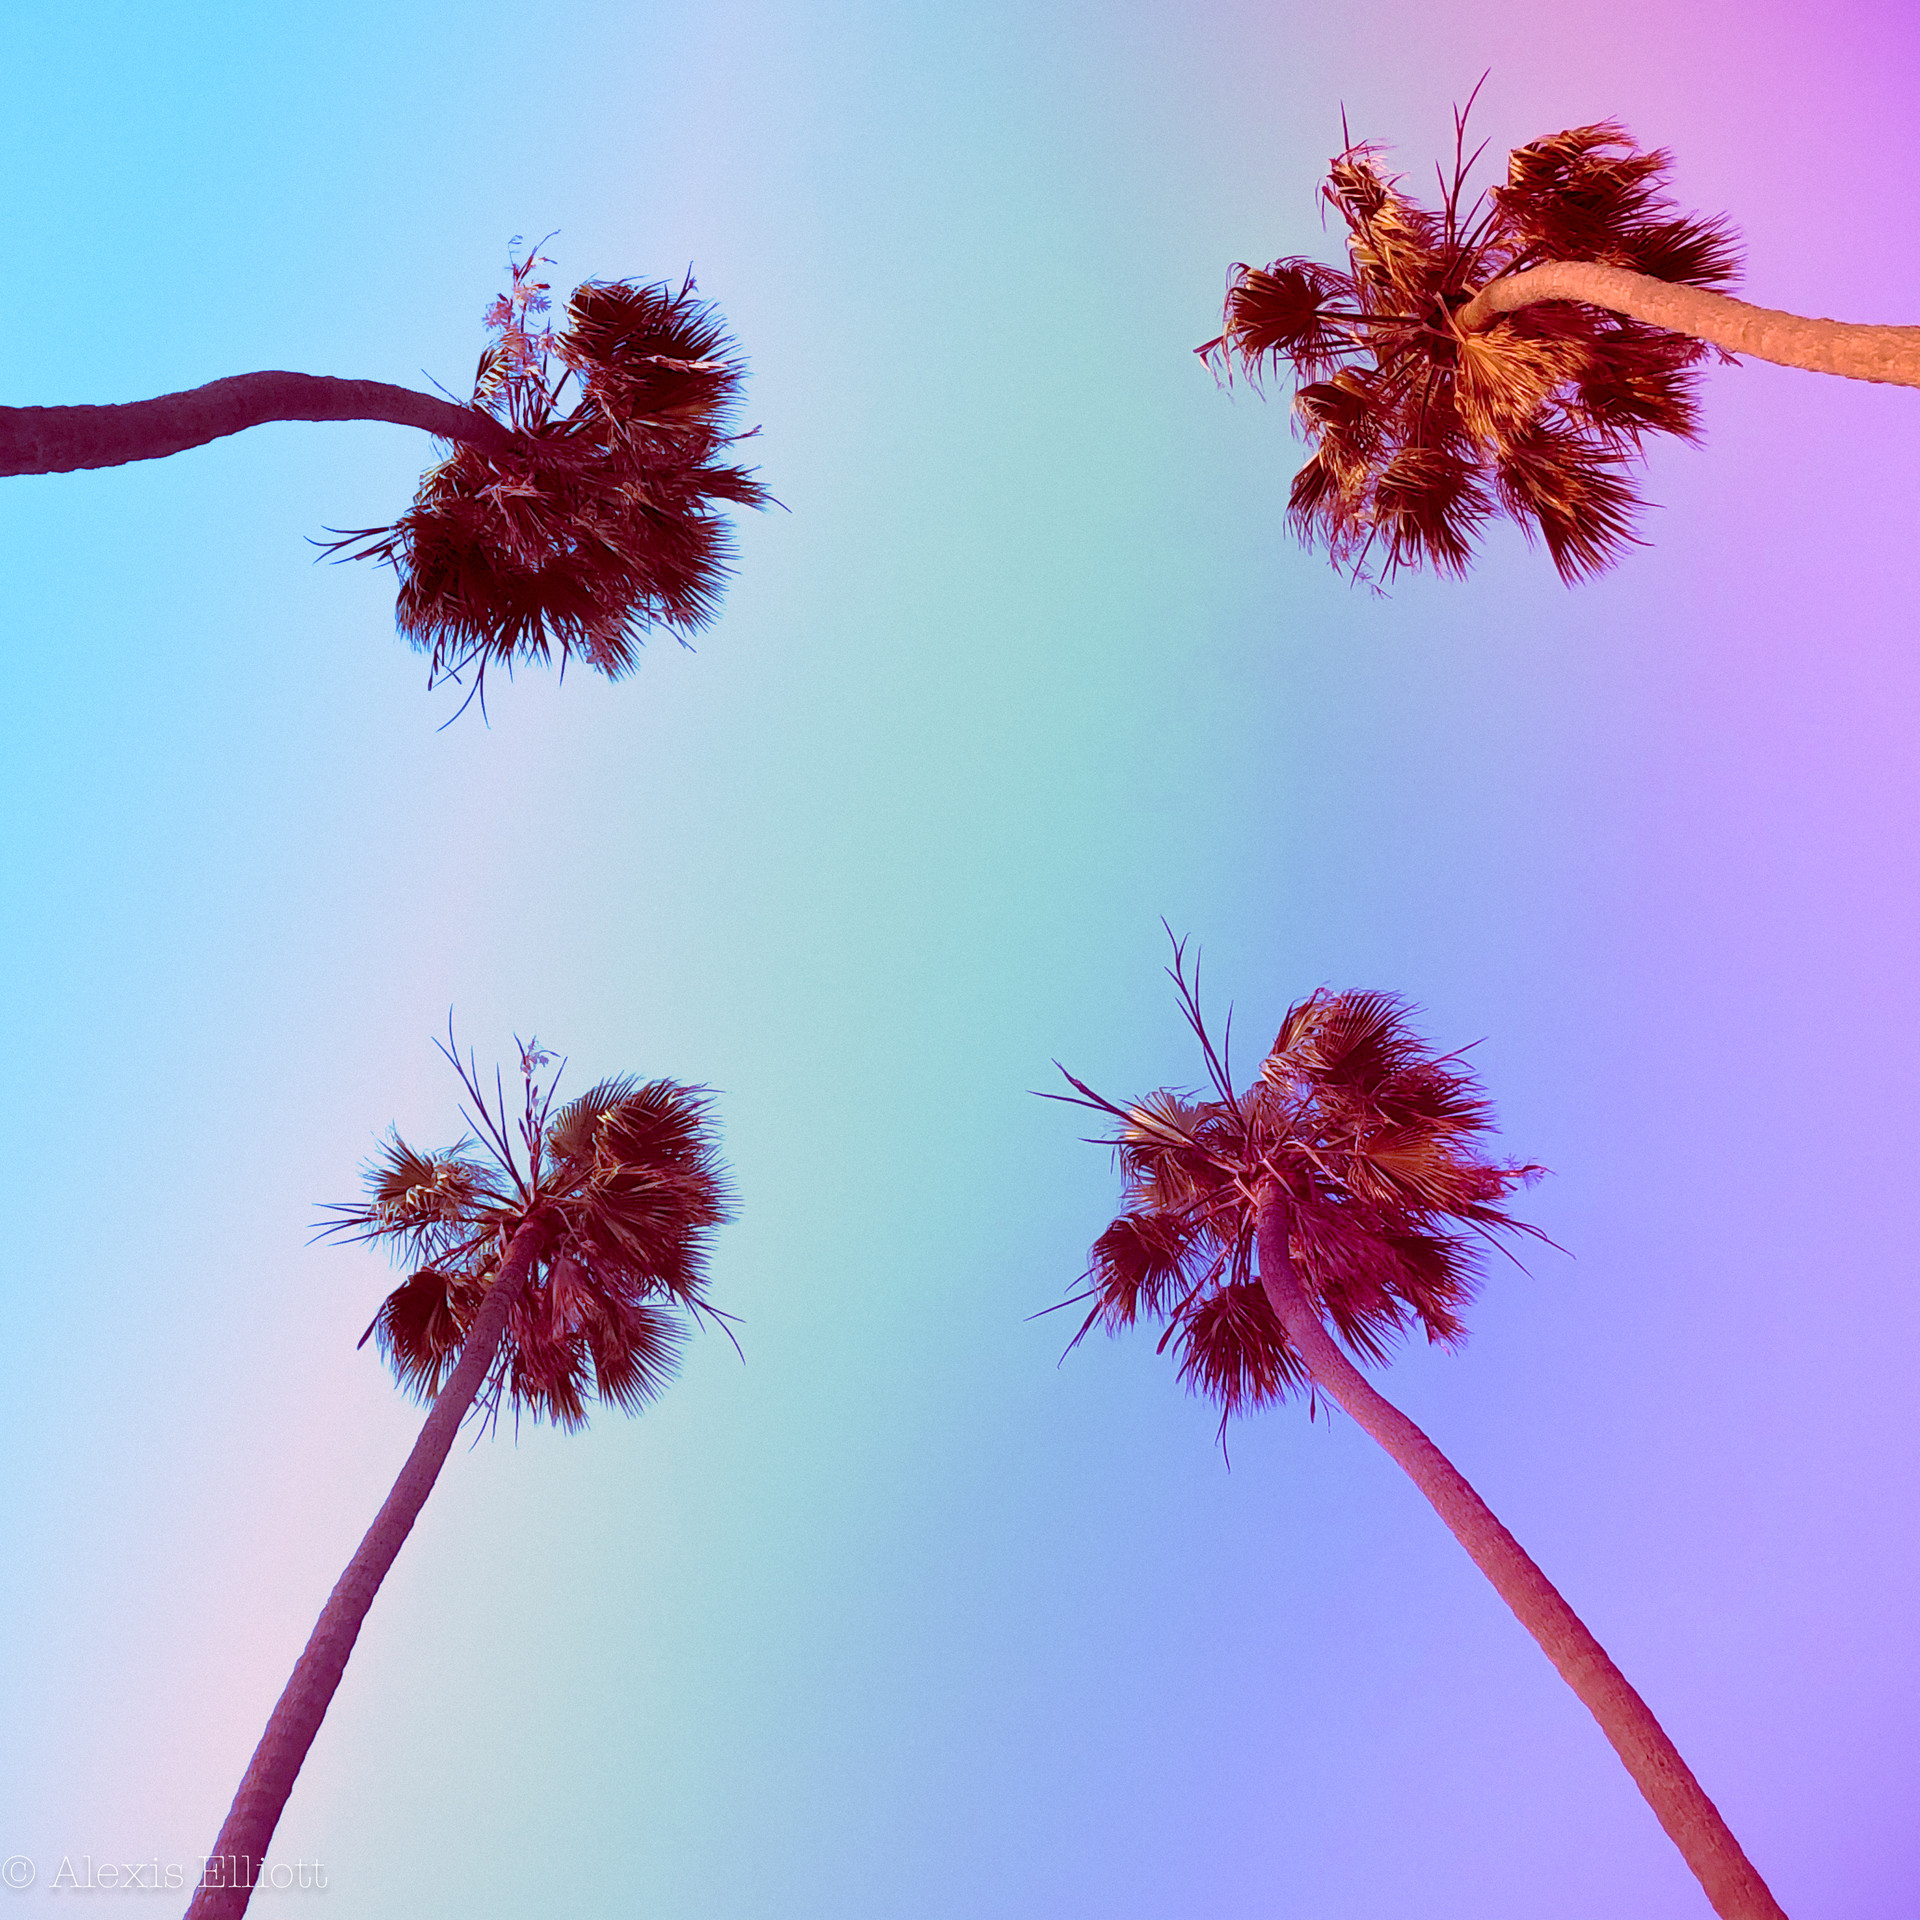 Crystalline Palms